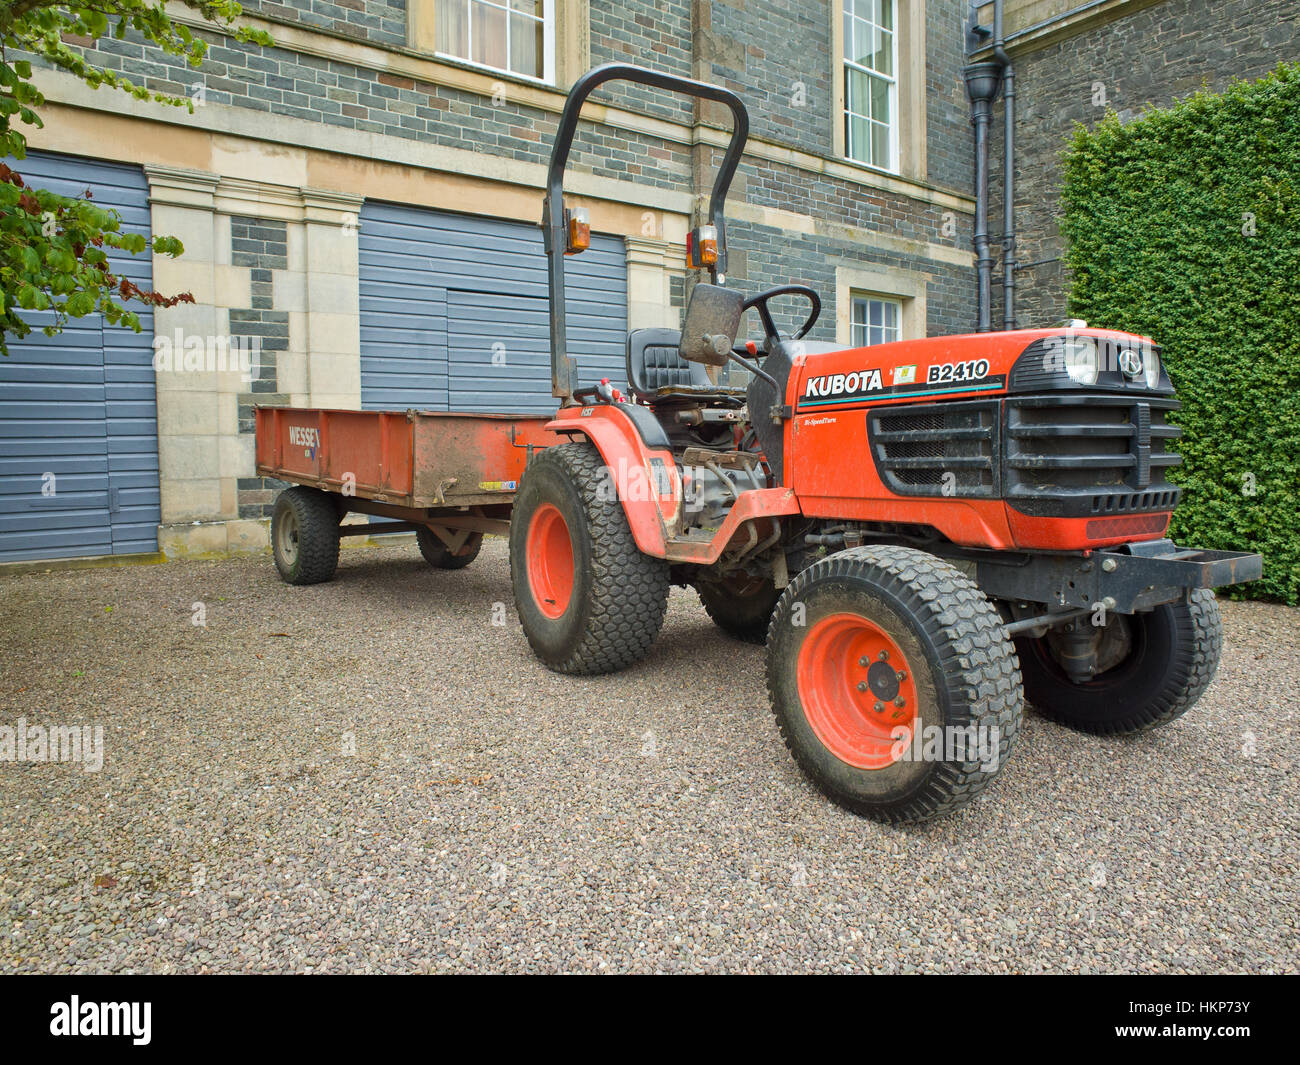 Kubota Tractor Stock Photos Kubota Tractor Stock Images Alamy